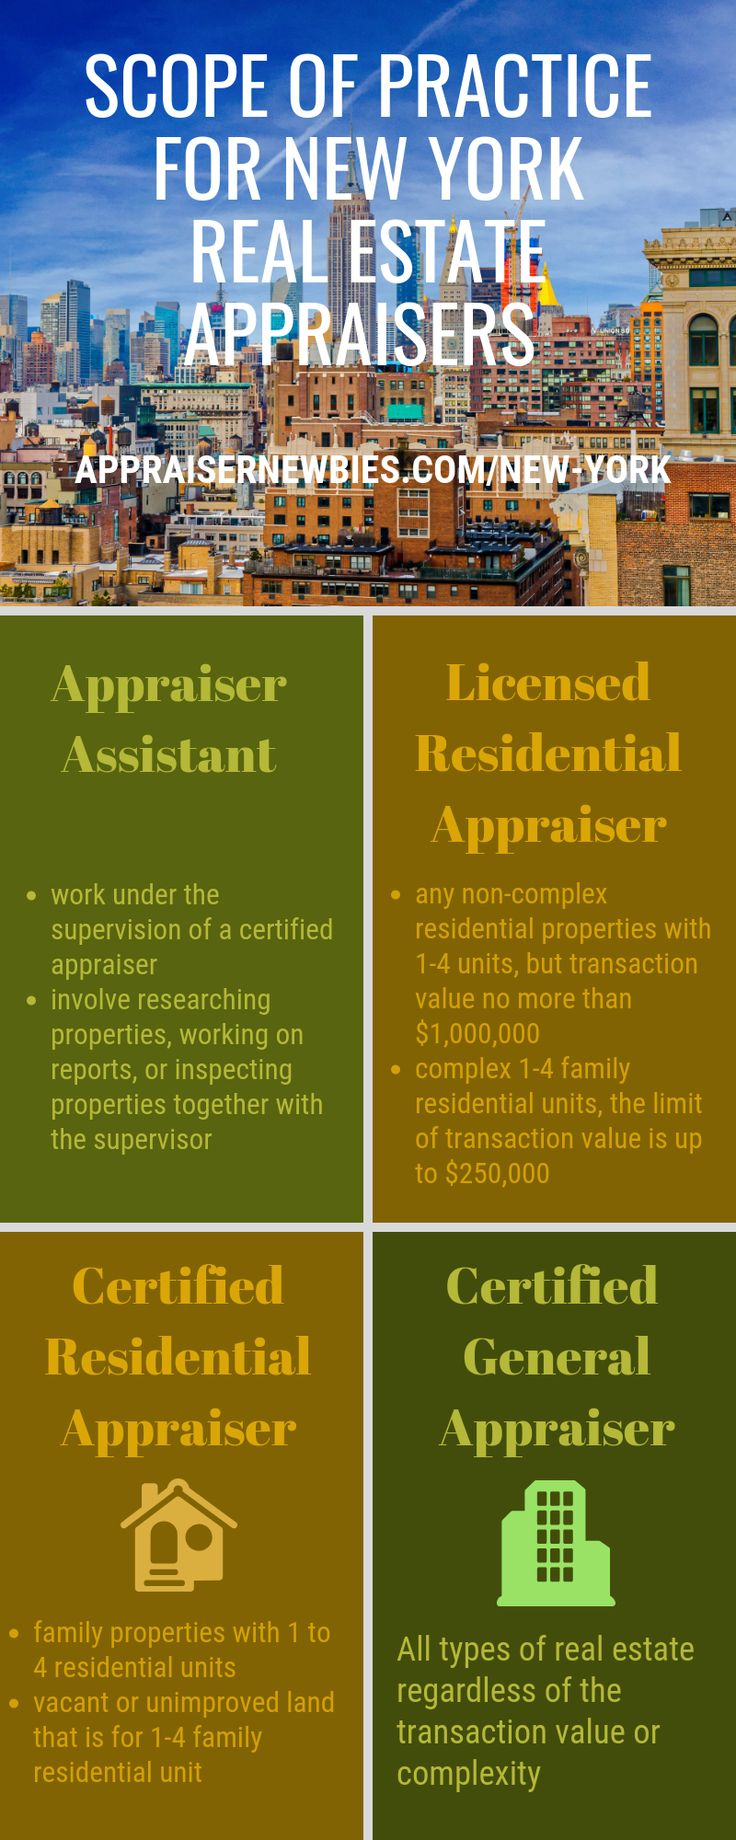 To a real estate appraiser in the New York State